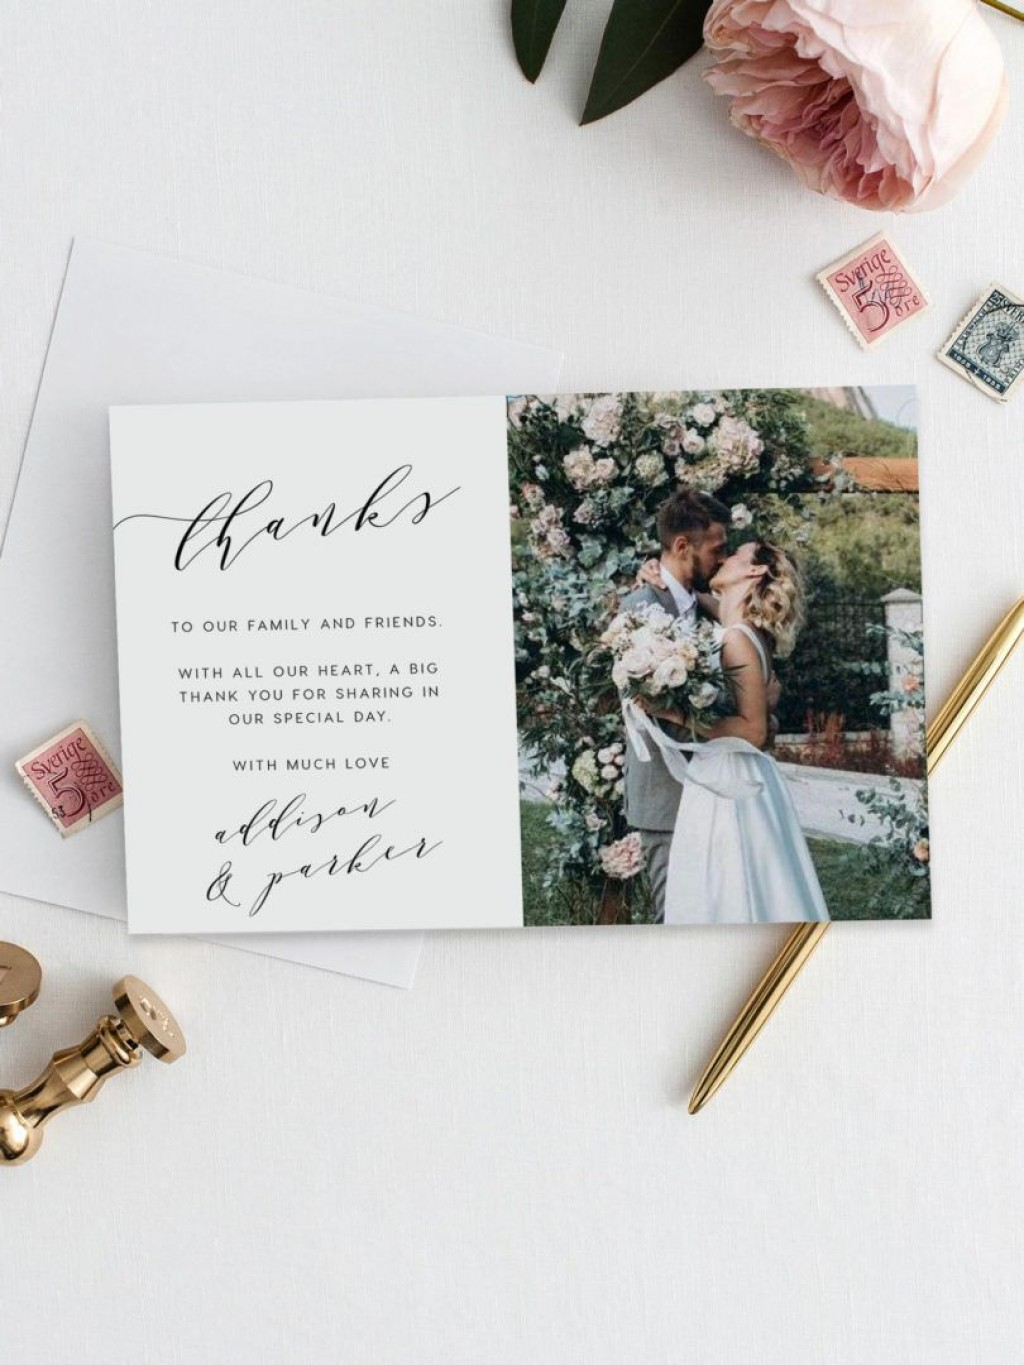 008 Awesome Thank You Note Template Wedding Money High Resolution  Card Example For Sample Cash GiftLarge